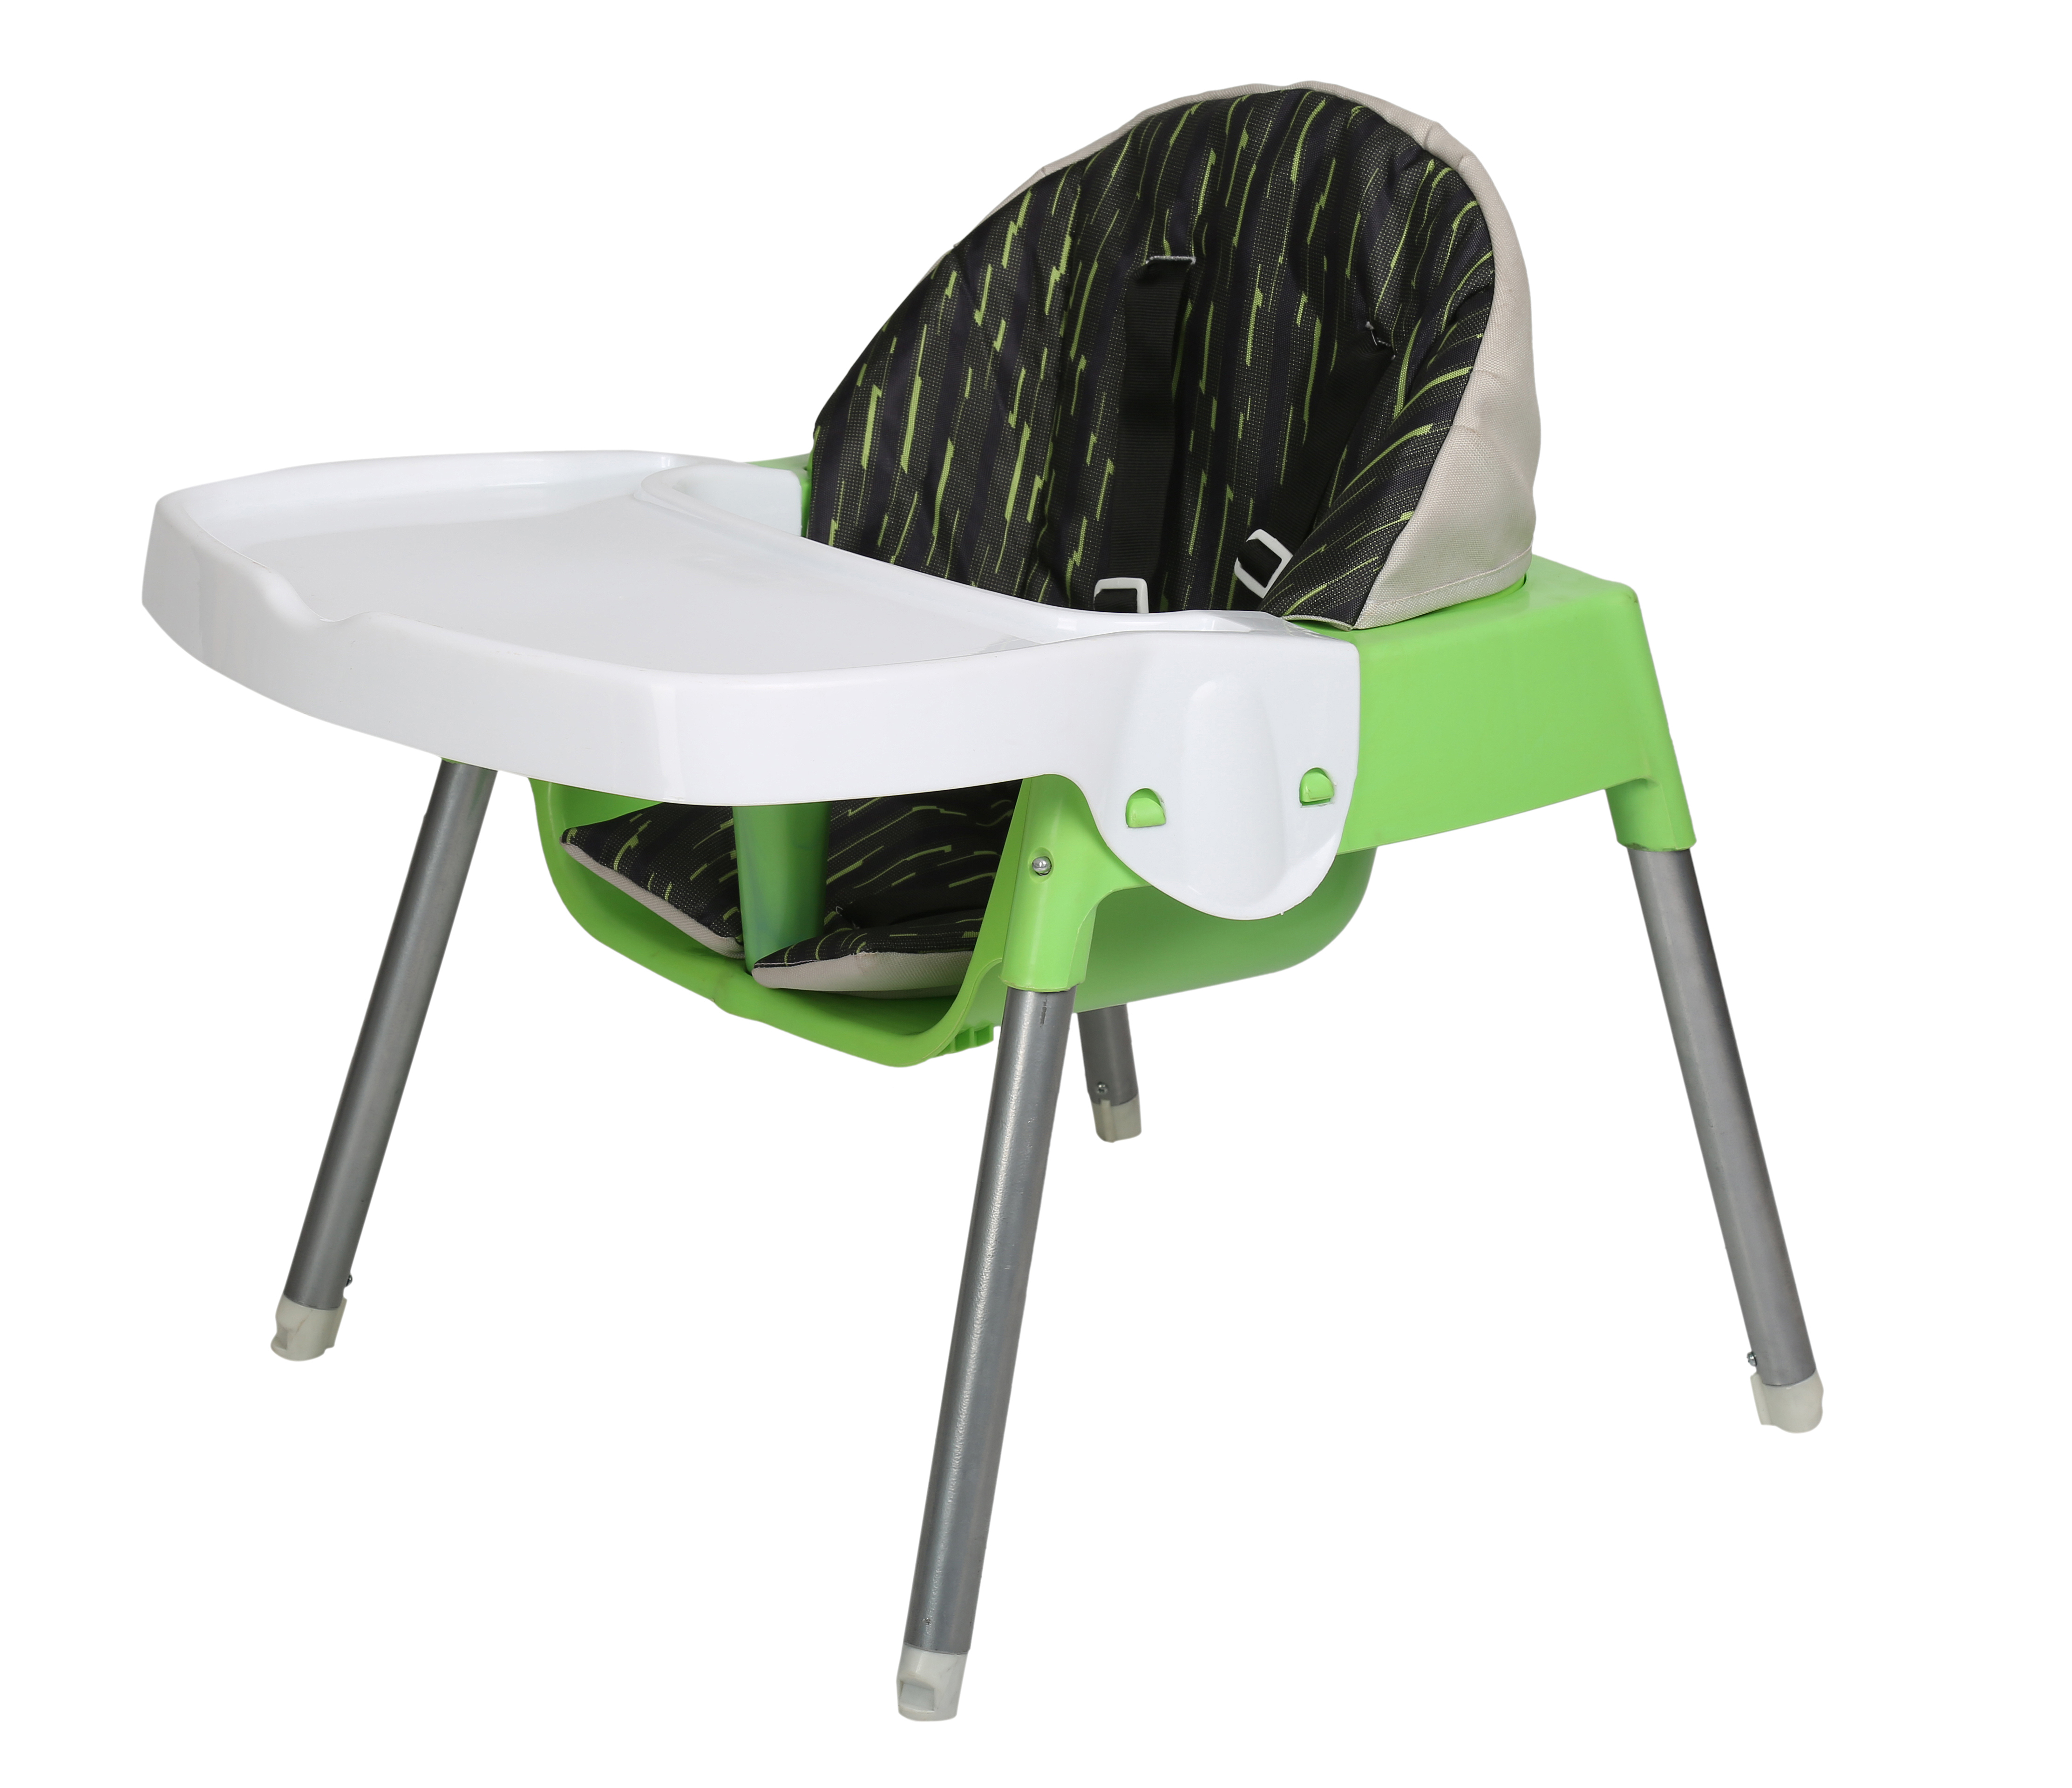 New Smart 3 X 1 High Chair